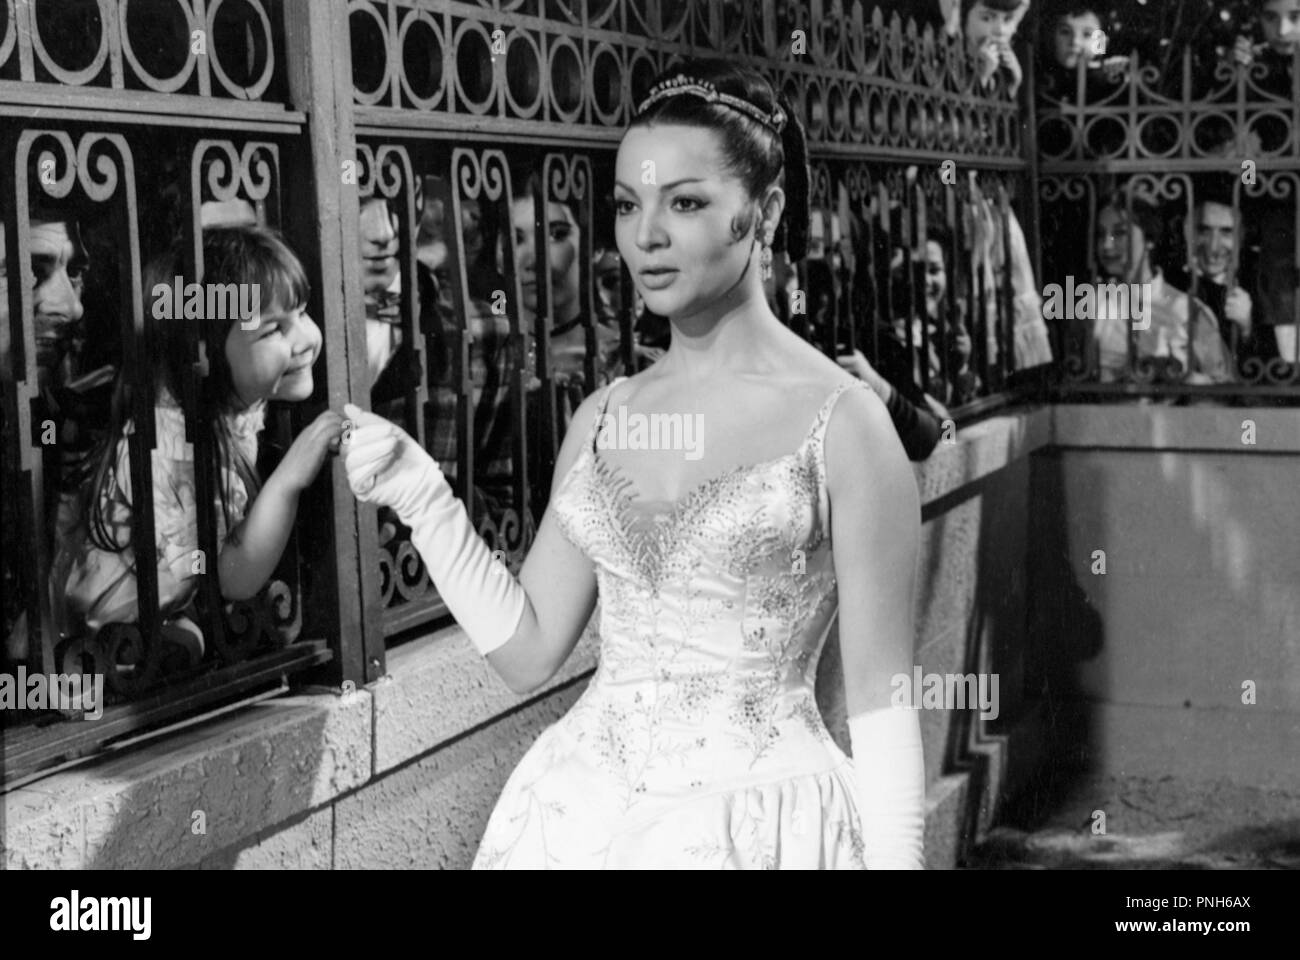 Lola Black and White Stock Photos & Images - Page 3 - Alamy